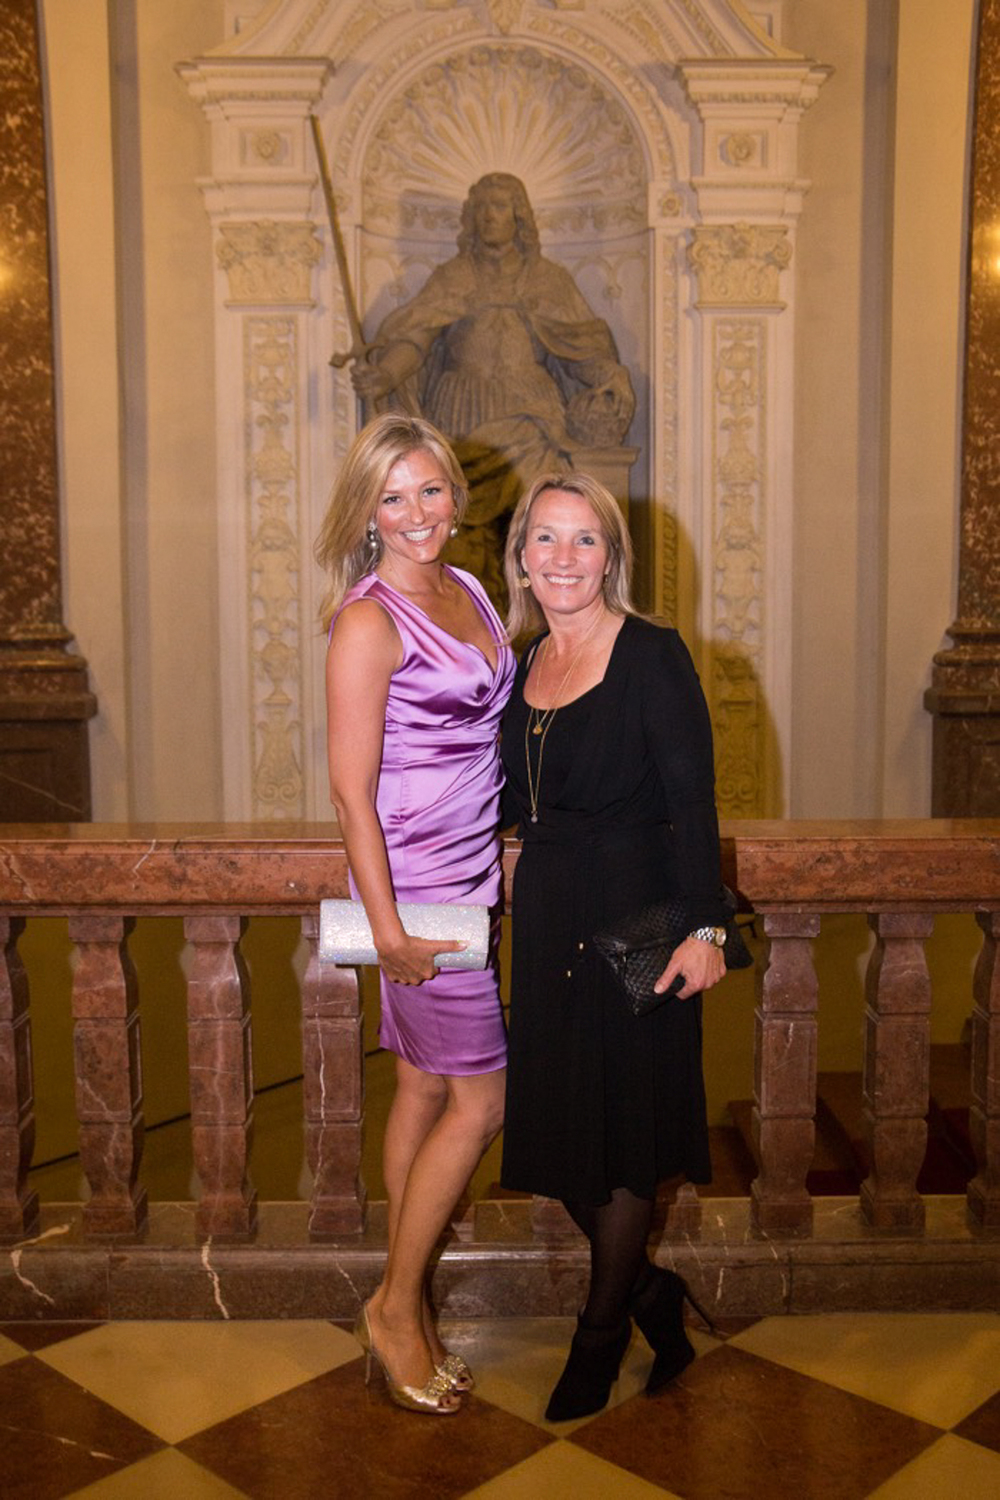 P aparazzi  photo of ex  Minister of Justice   and   Minister of Foreign Affairs   Lene Espersen and Portrait Photographer Charlotte Starup-Hansen.     Crown Prince Frederik and  Crown Princess Mary of Denmark  receive guests at the Grand Dinner at the Resident, Residency during their visit in Germany on May 20, 2015 in Munich, Germany.  May 20, 2015